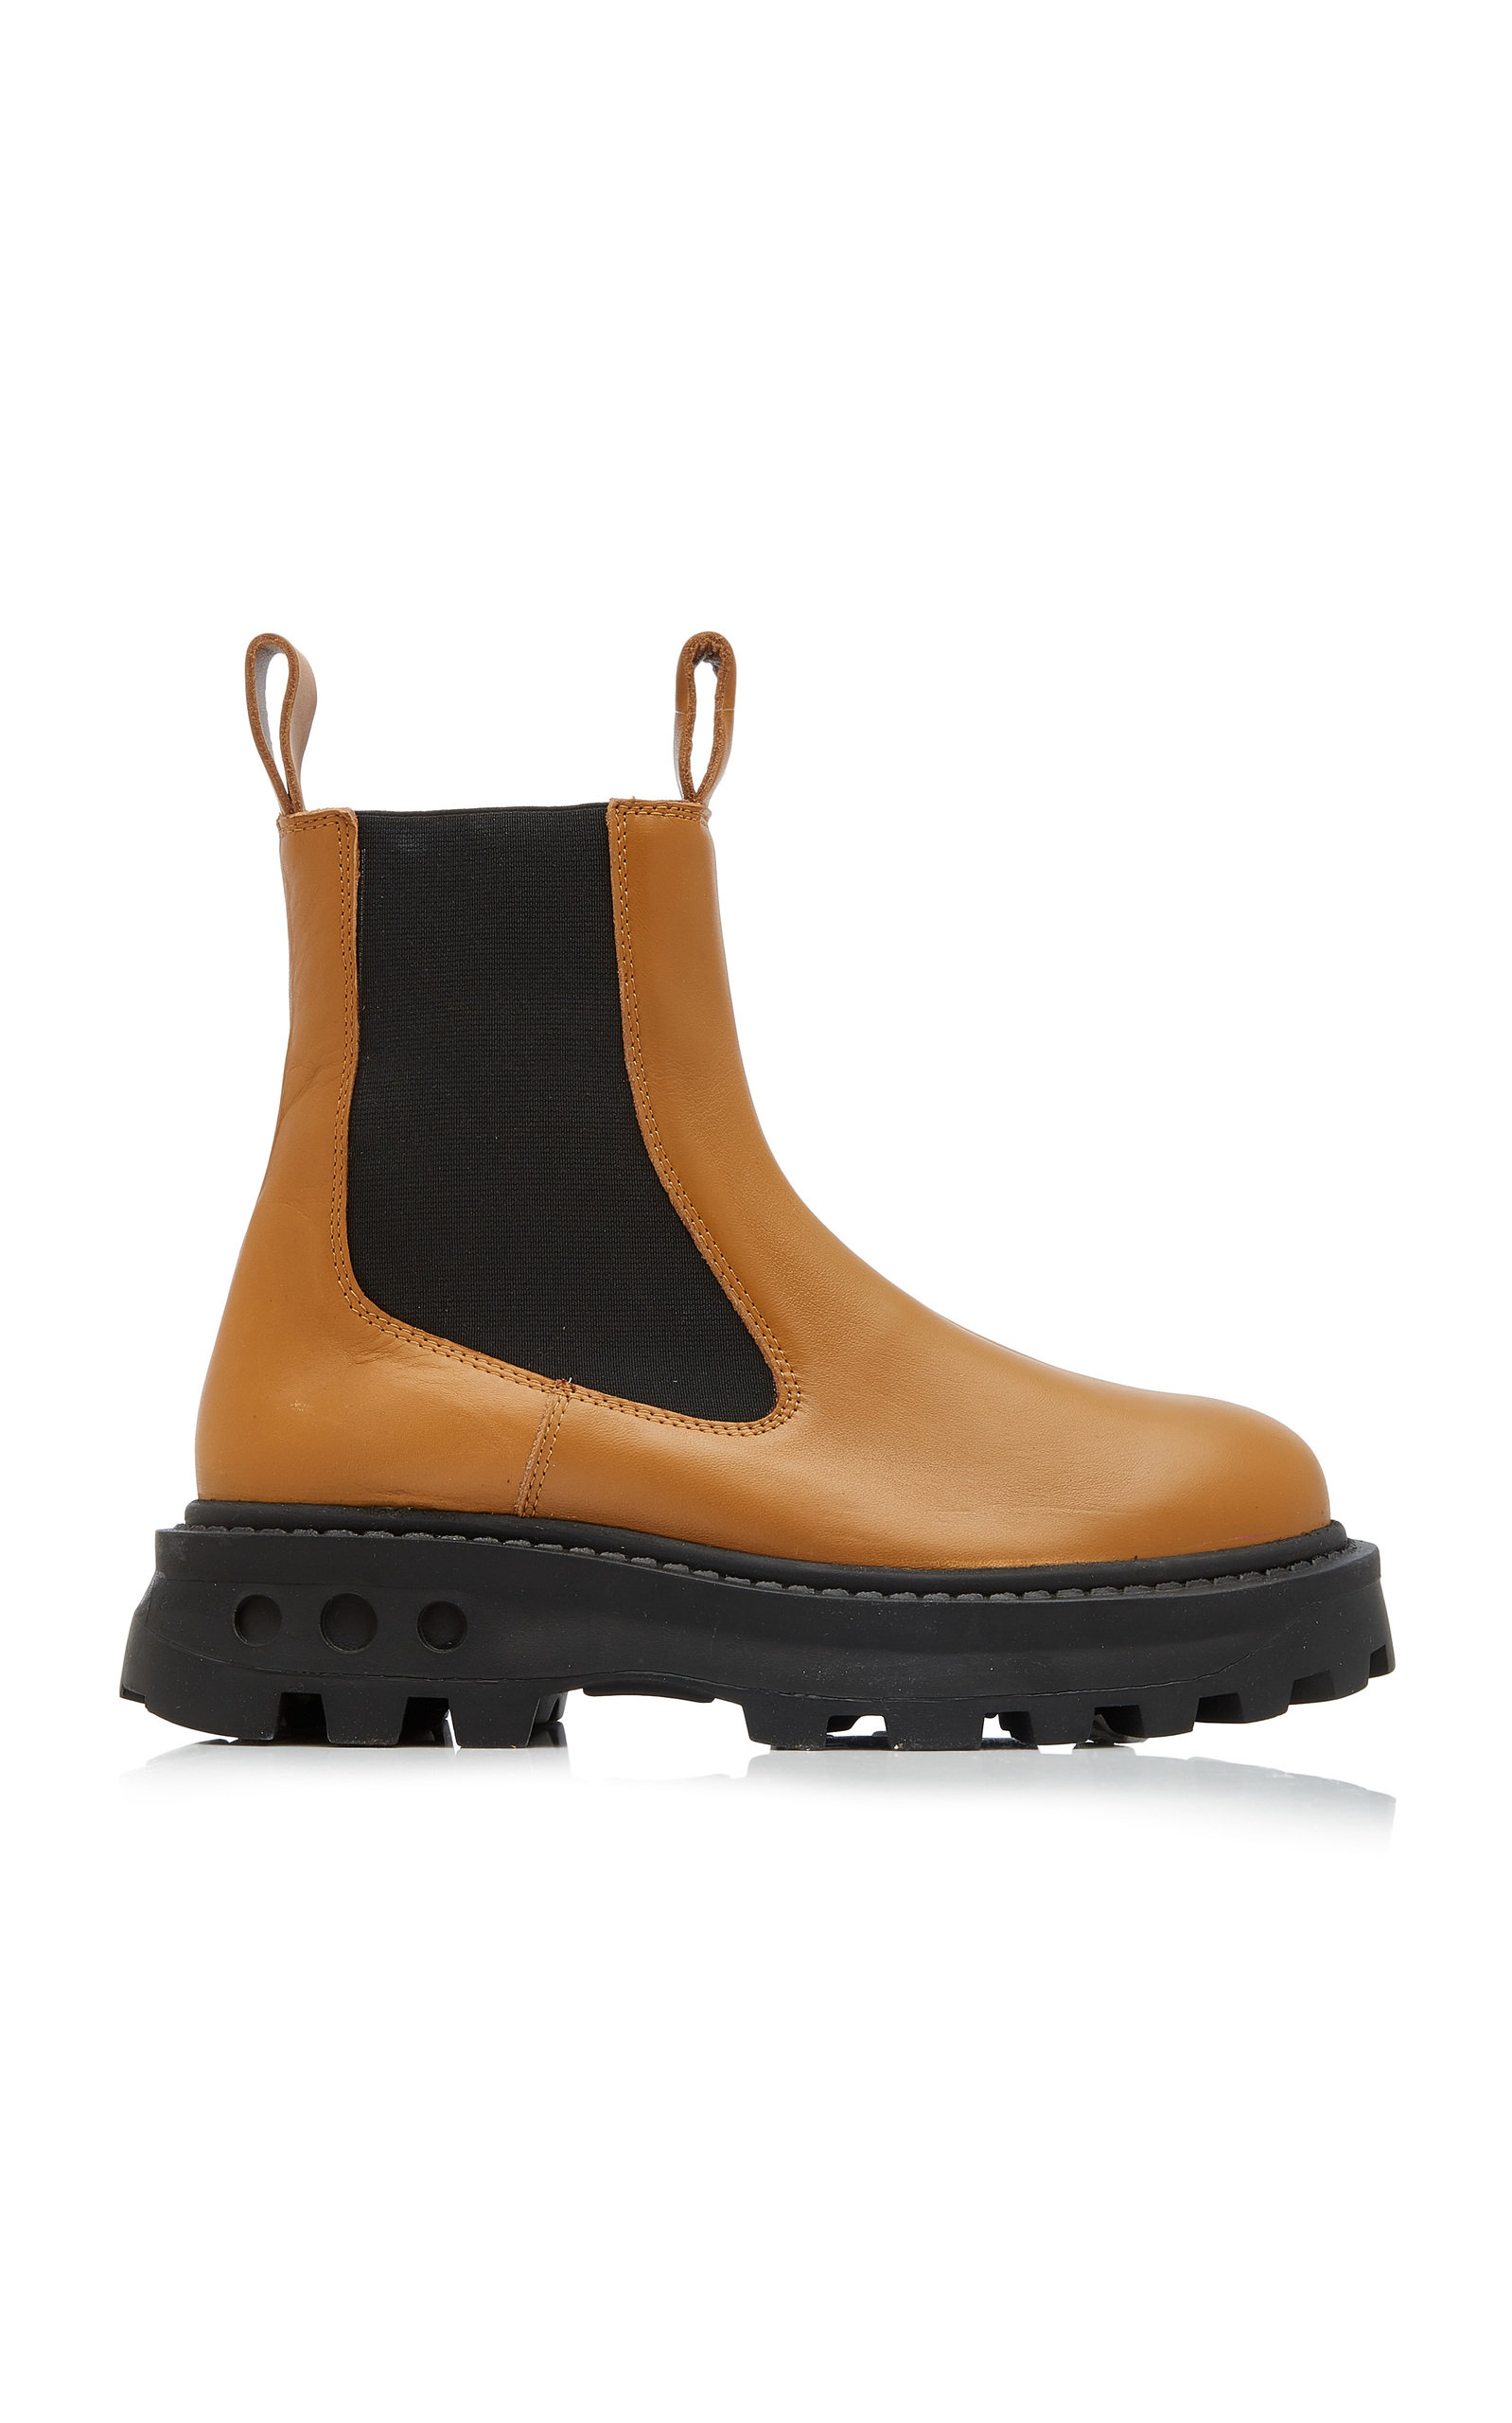 Simon Miller SCRAMBLER LEATHER ANKLE BOOTS